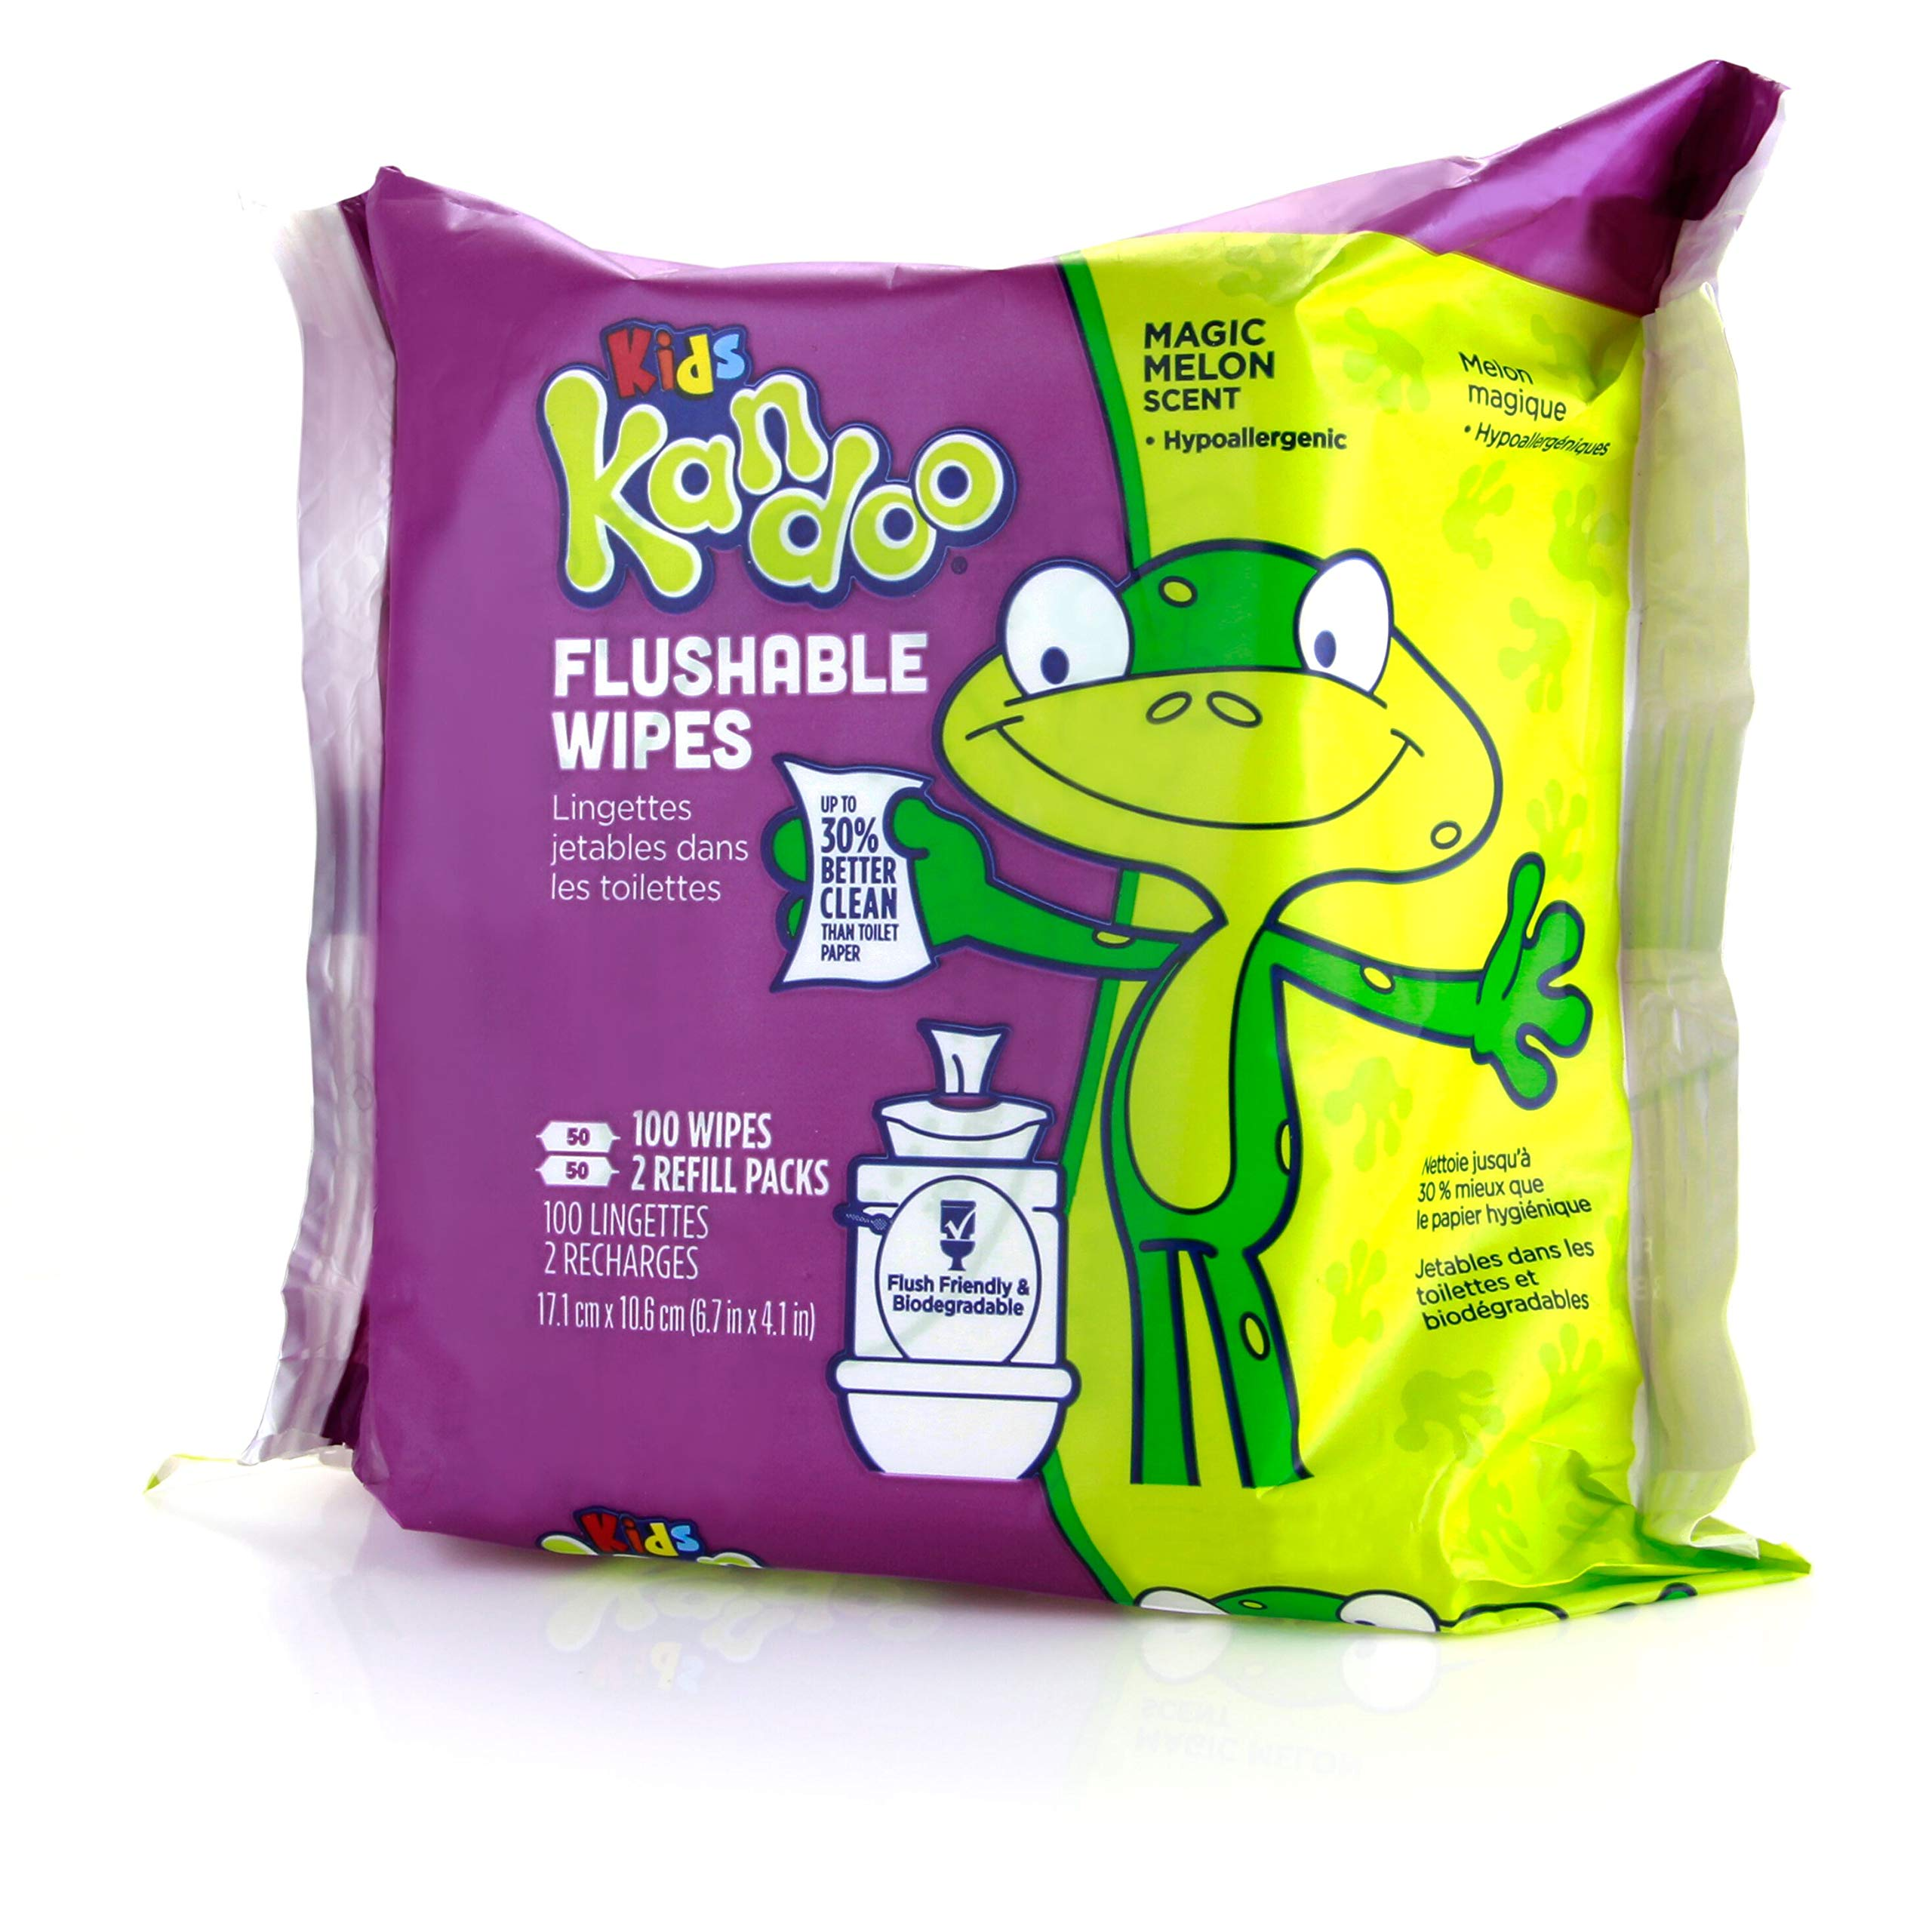 Flushable Baby Wipes for Kids, Magic Melon by Kandoo, Potty Training Wet Cleansing Cloths Refills, 100 Ct, Pack of 6 (Packaging May Vary) by Kandoo